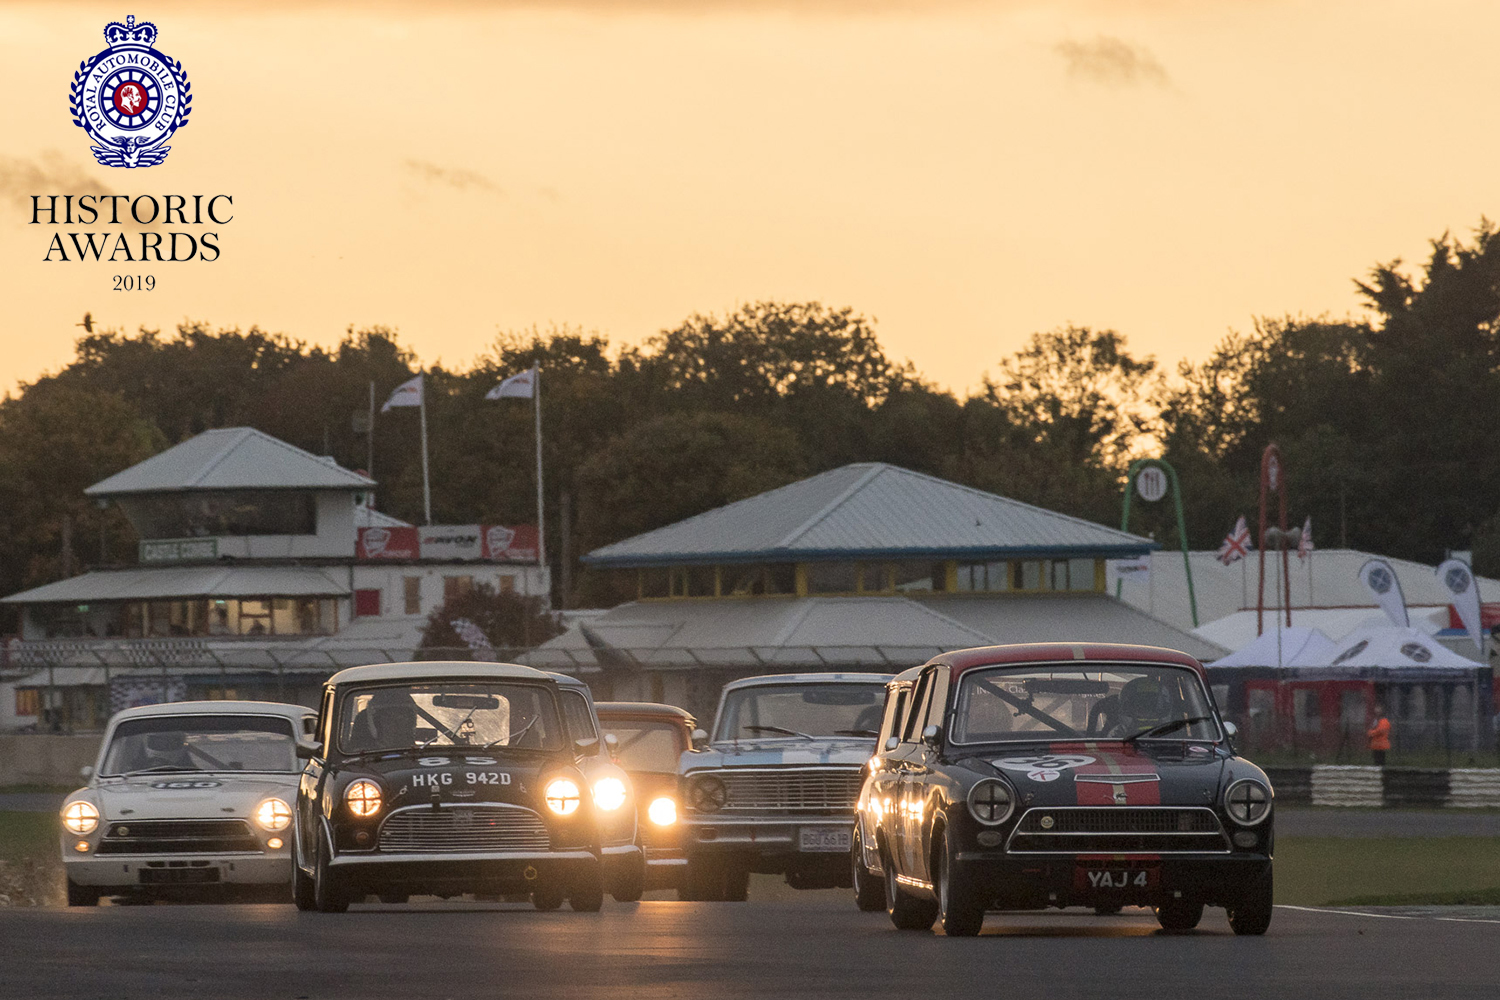 AUTUMN CLASSIC NOMINATED FOR ROYAL AUTOMOBILE CLUB HISTORIC AWARDS